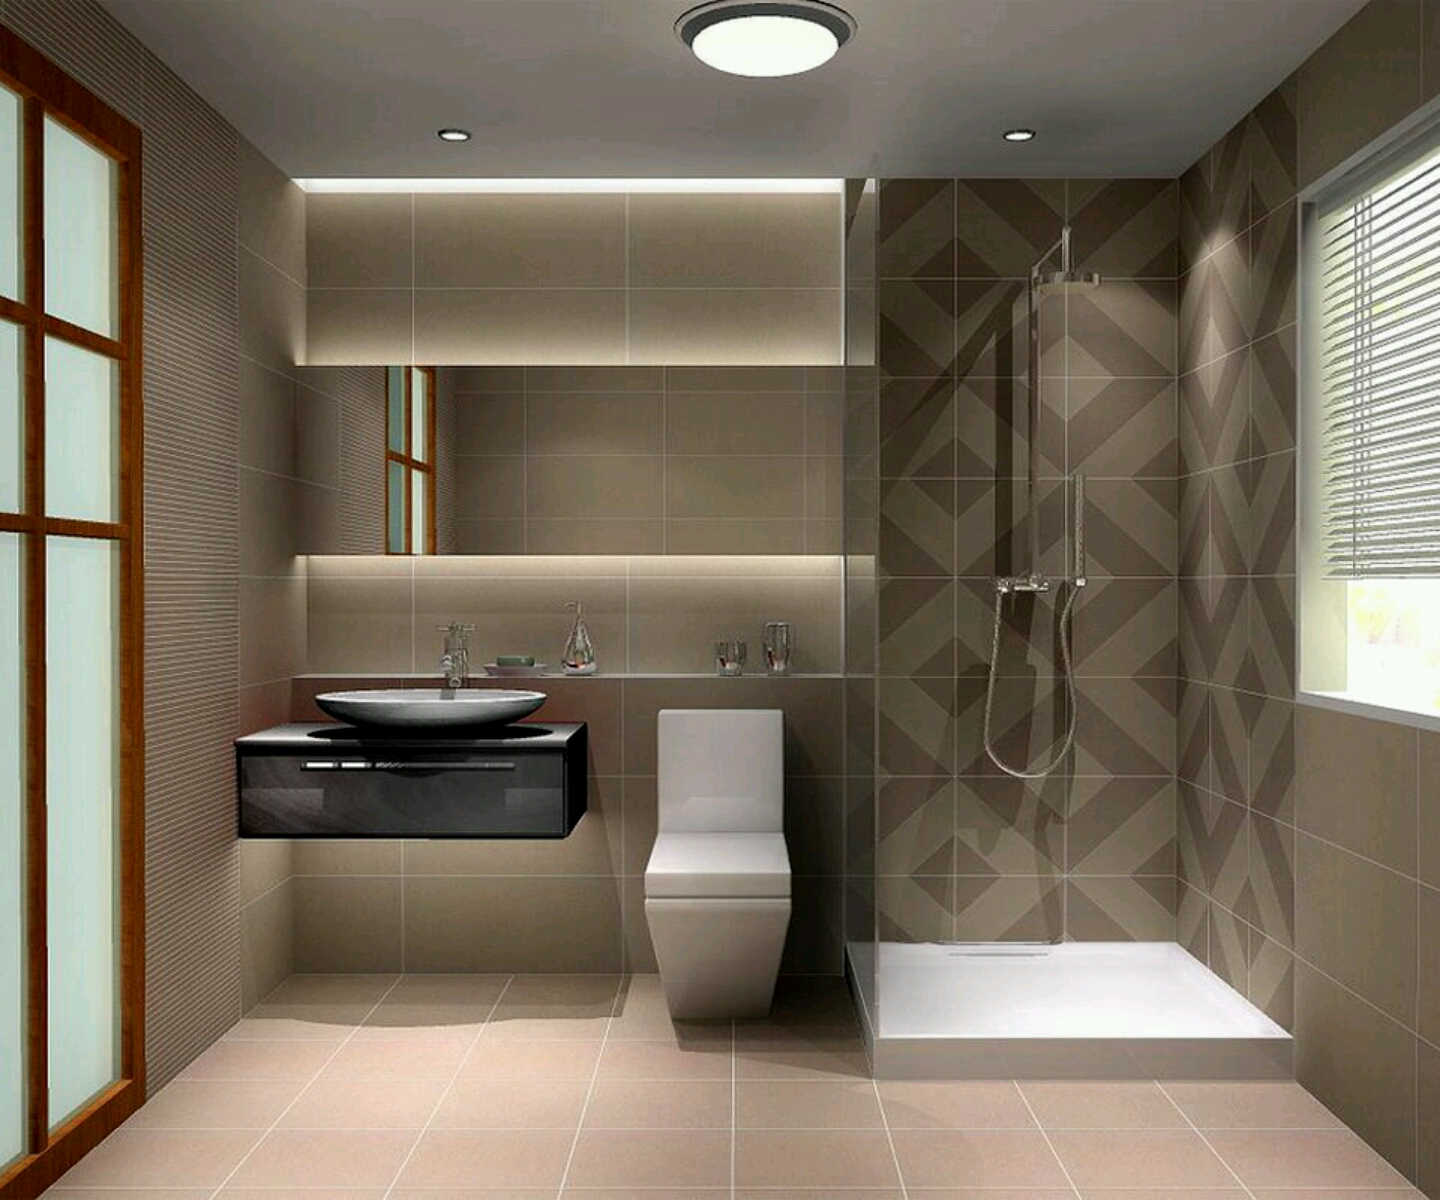 Small modern bathroom design 2017 grasscloth wallpaper for Modern small bathroom design